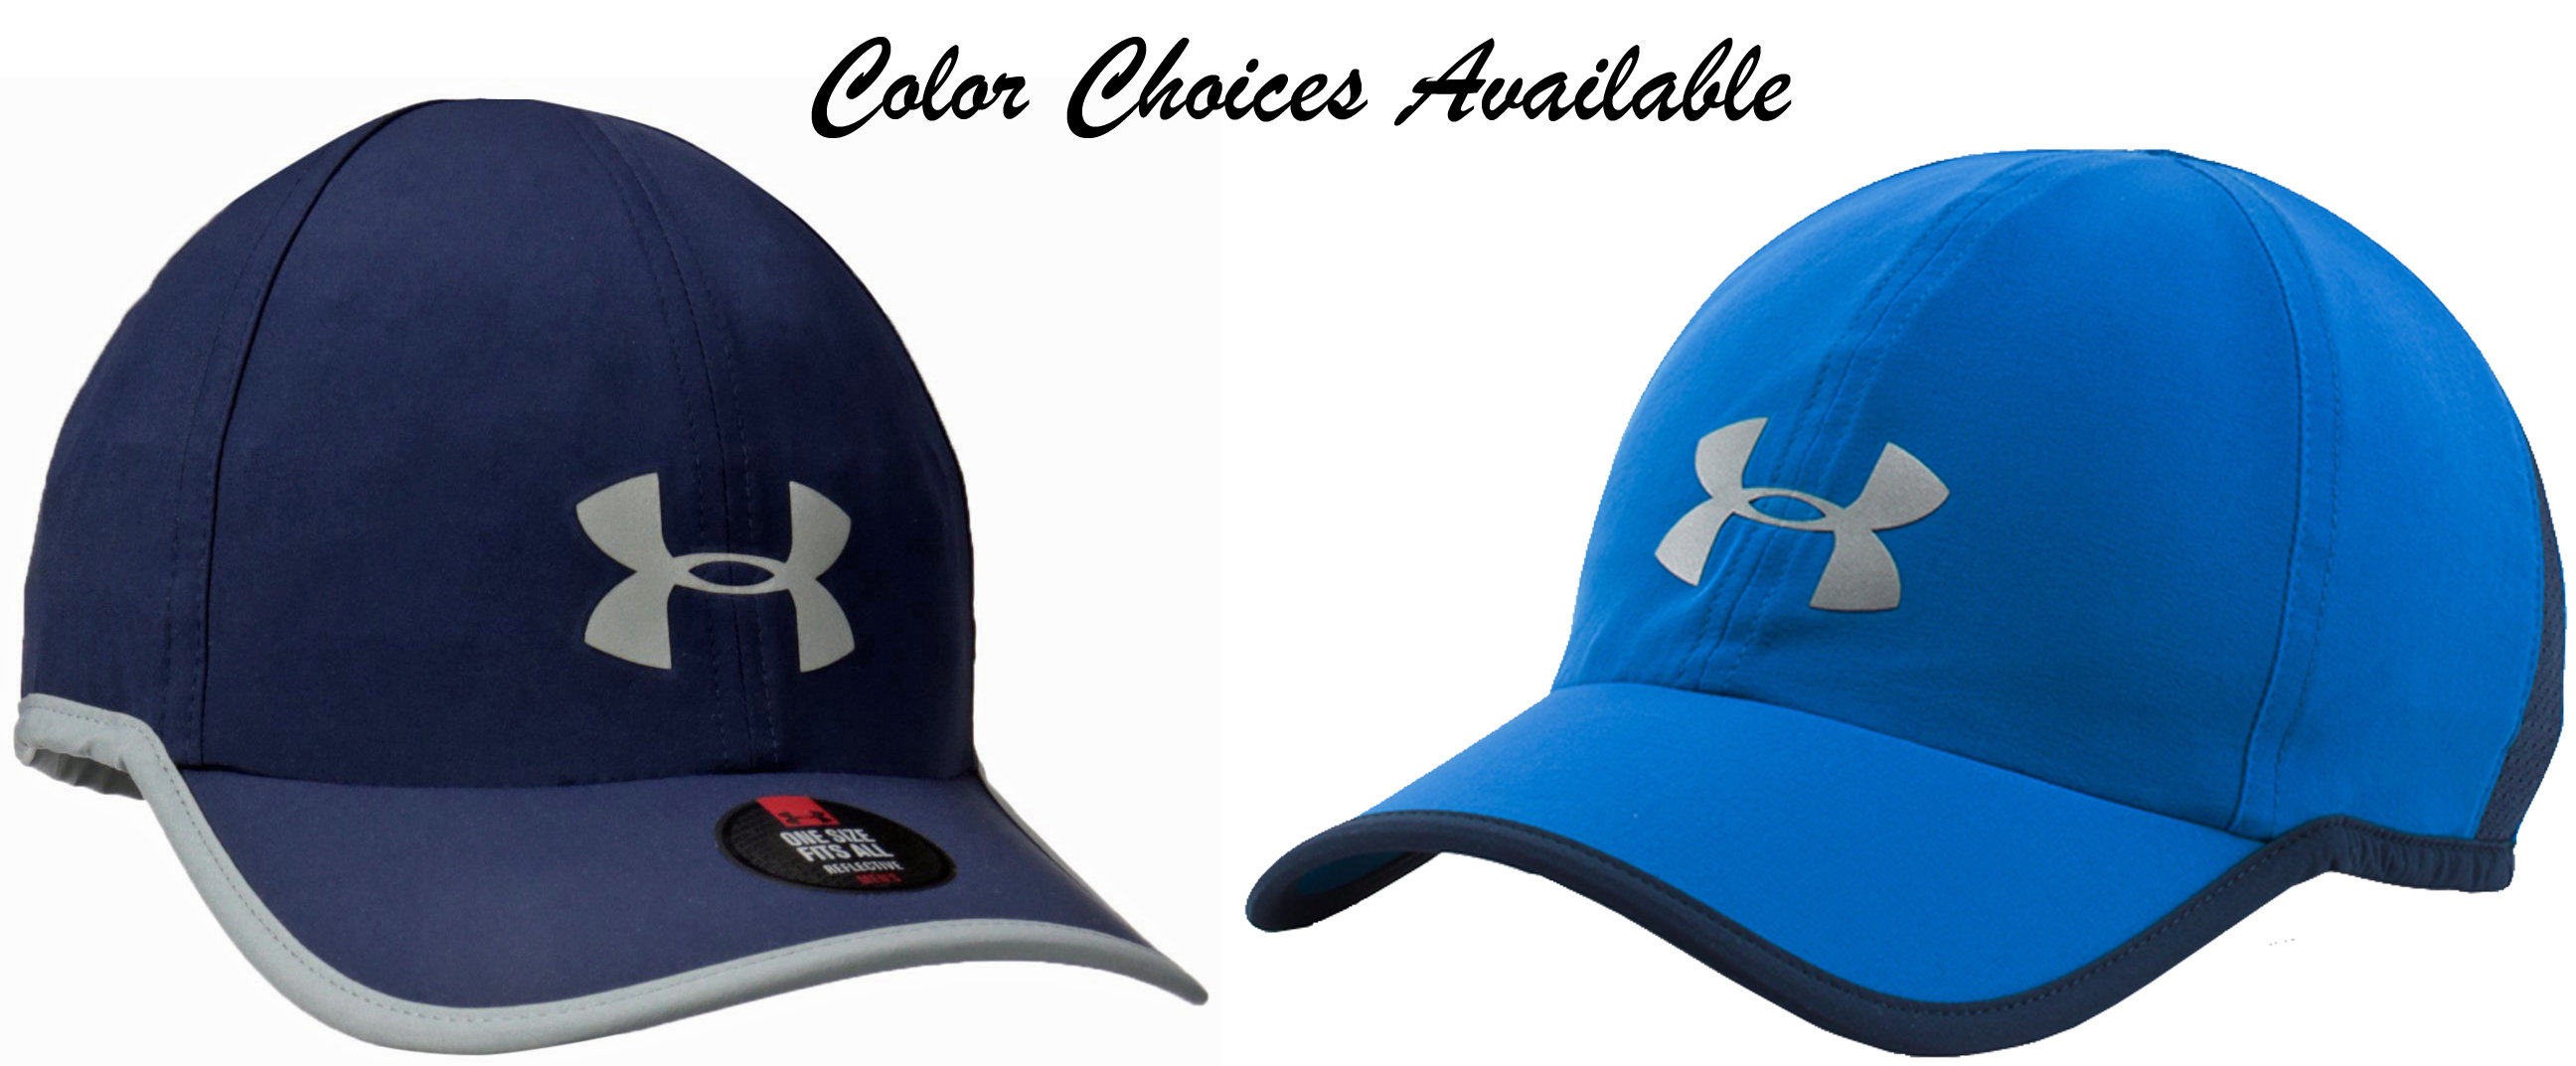 Under Armour Men's Shadow Run Cap 3.0 - Color Choices 14646